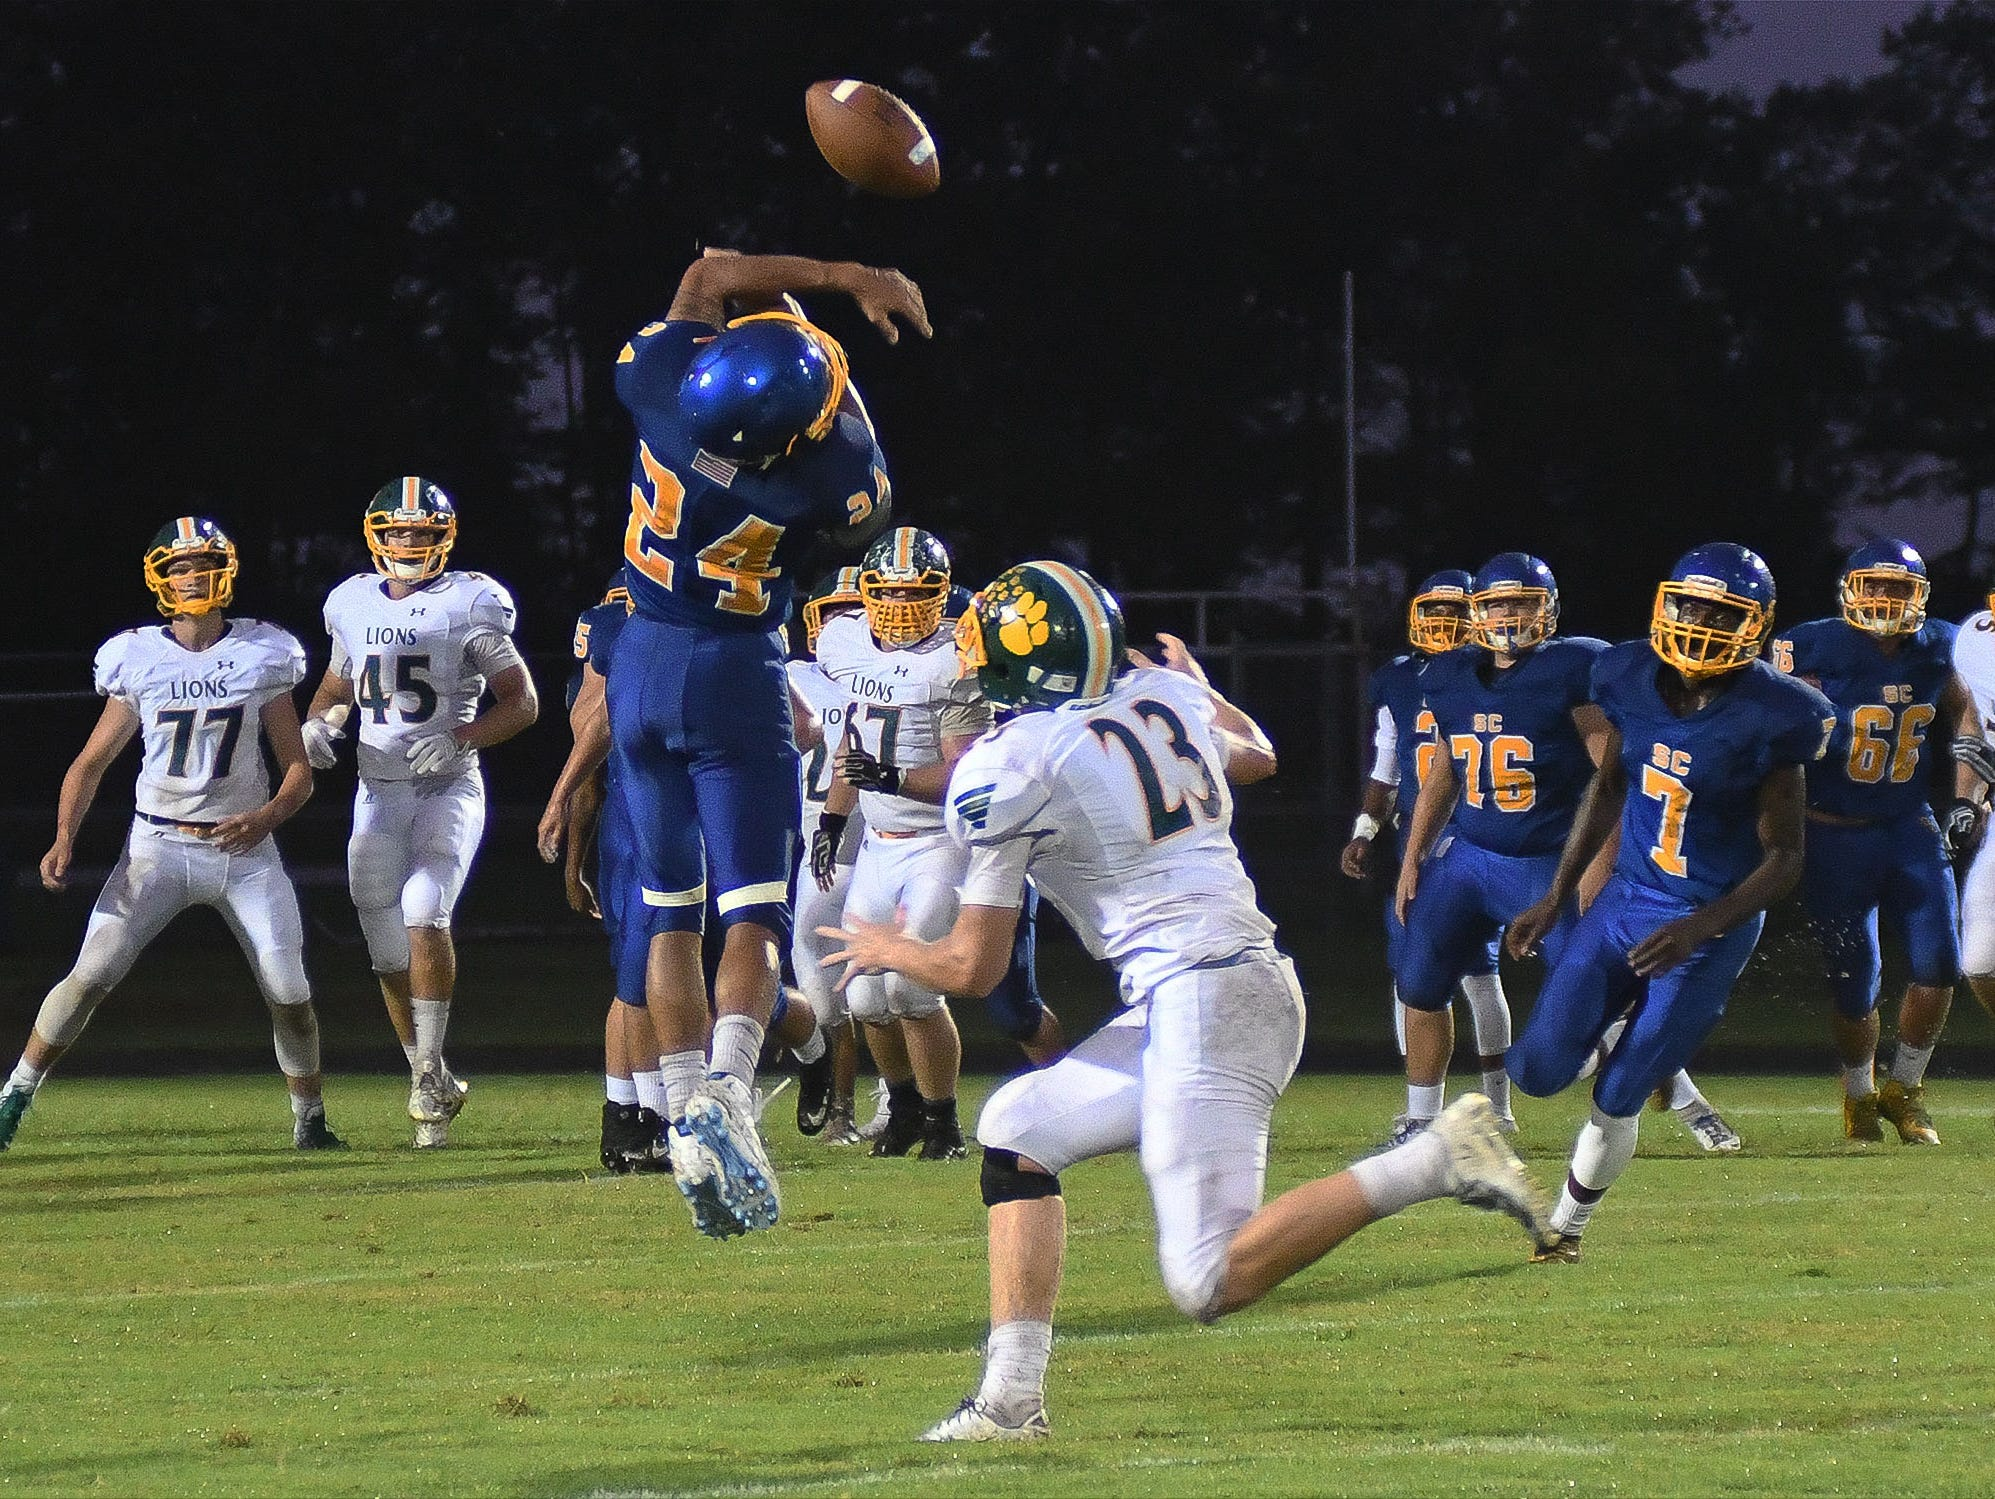 Sussex Central's Isaiah Barnes (24) breaks up a pass during the game against Queen Anne on Friday, Sept. 14, 2018.